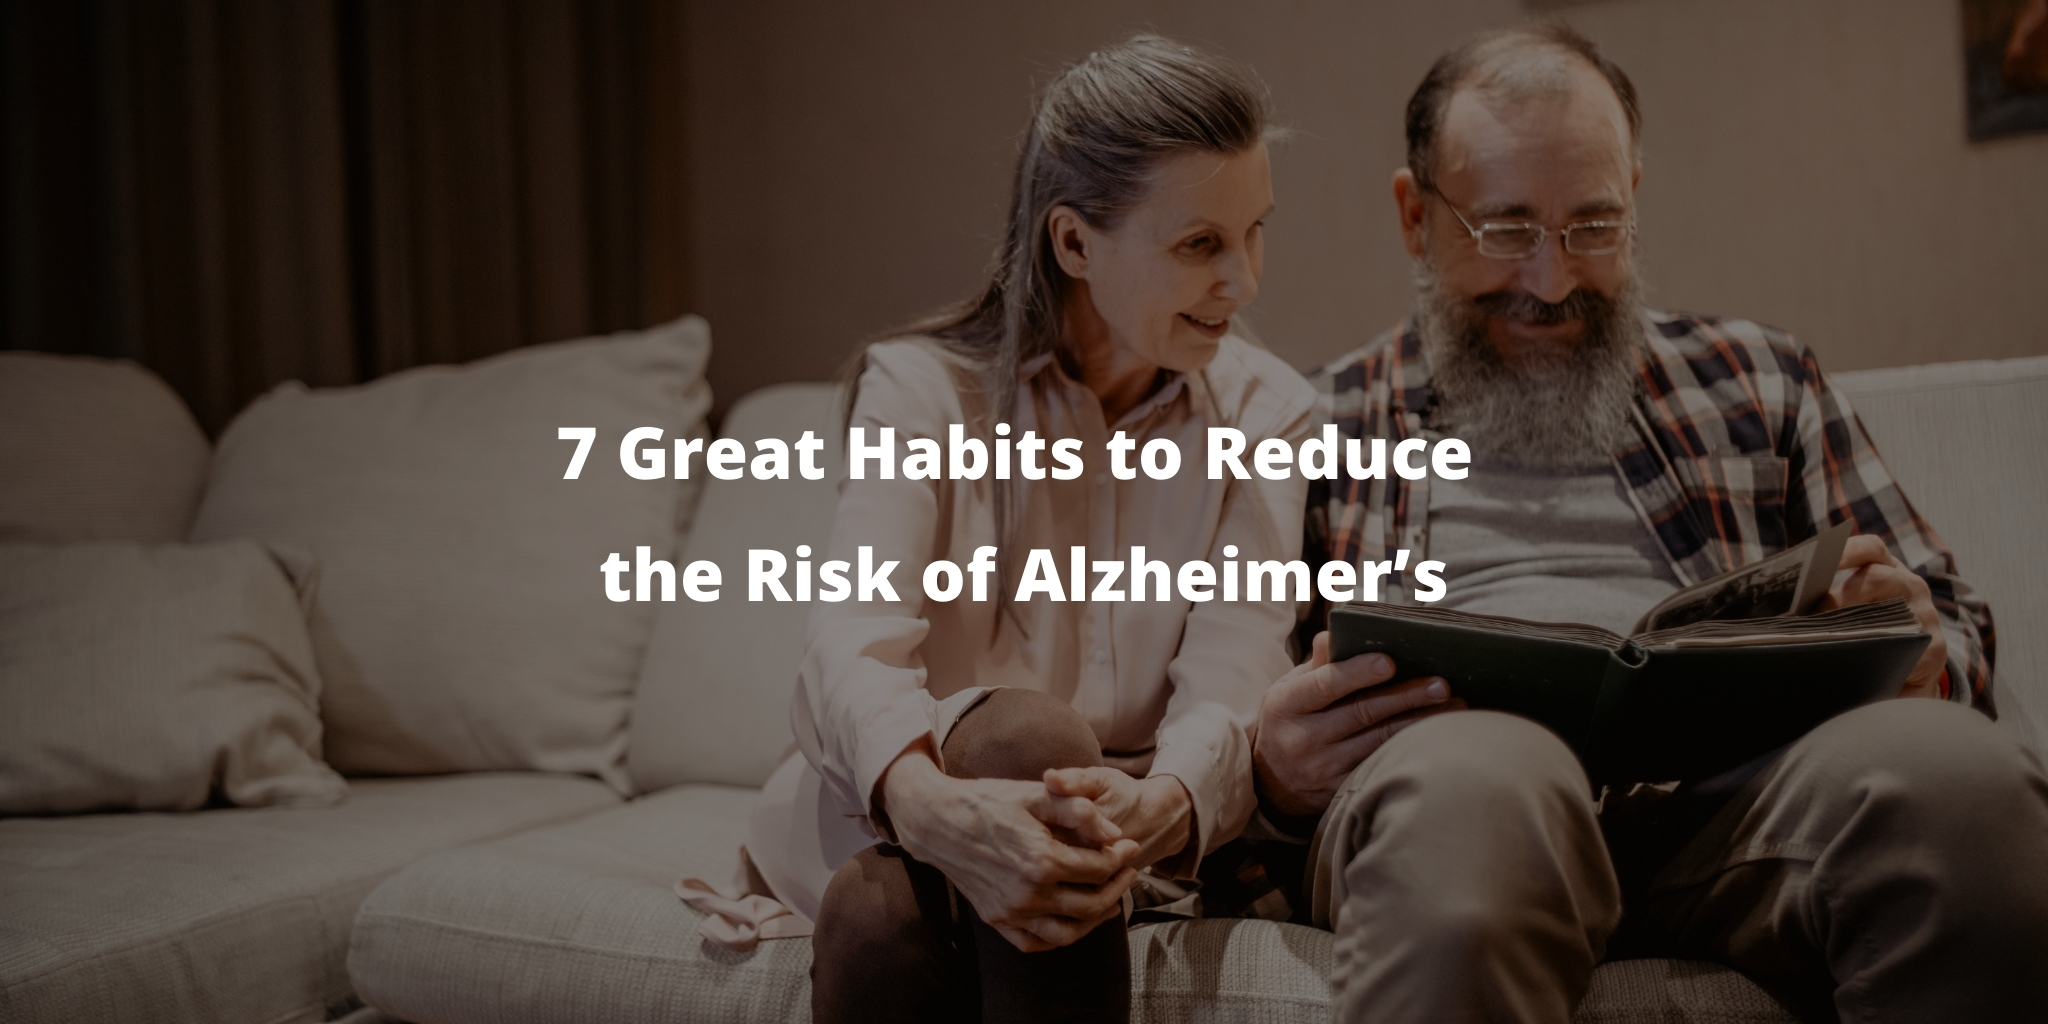 7 Great Habits to Reduce the Risk of Alzheimer's